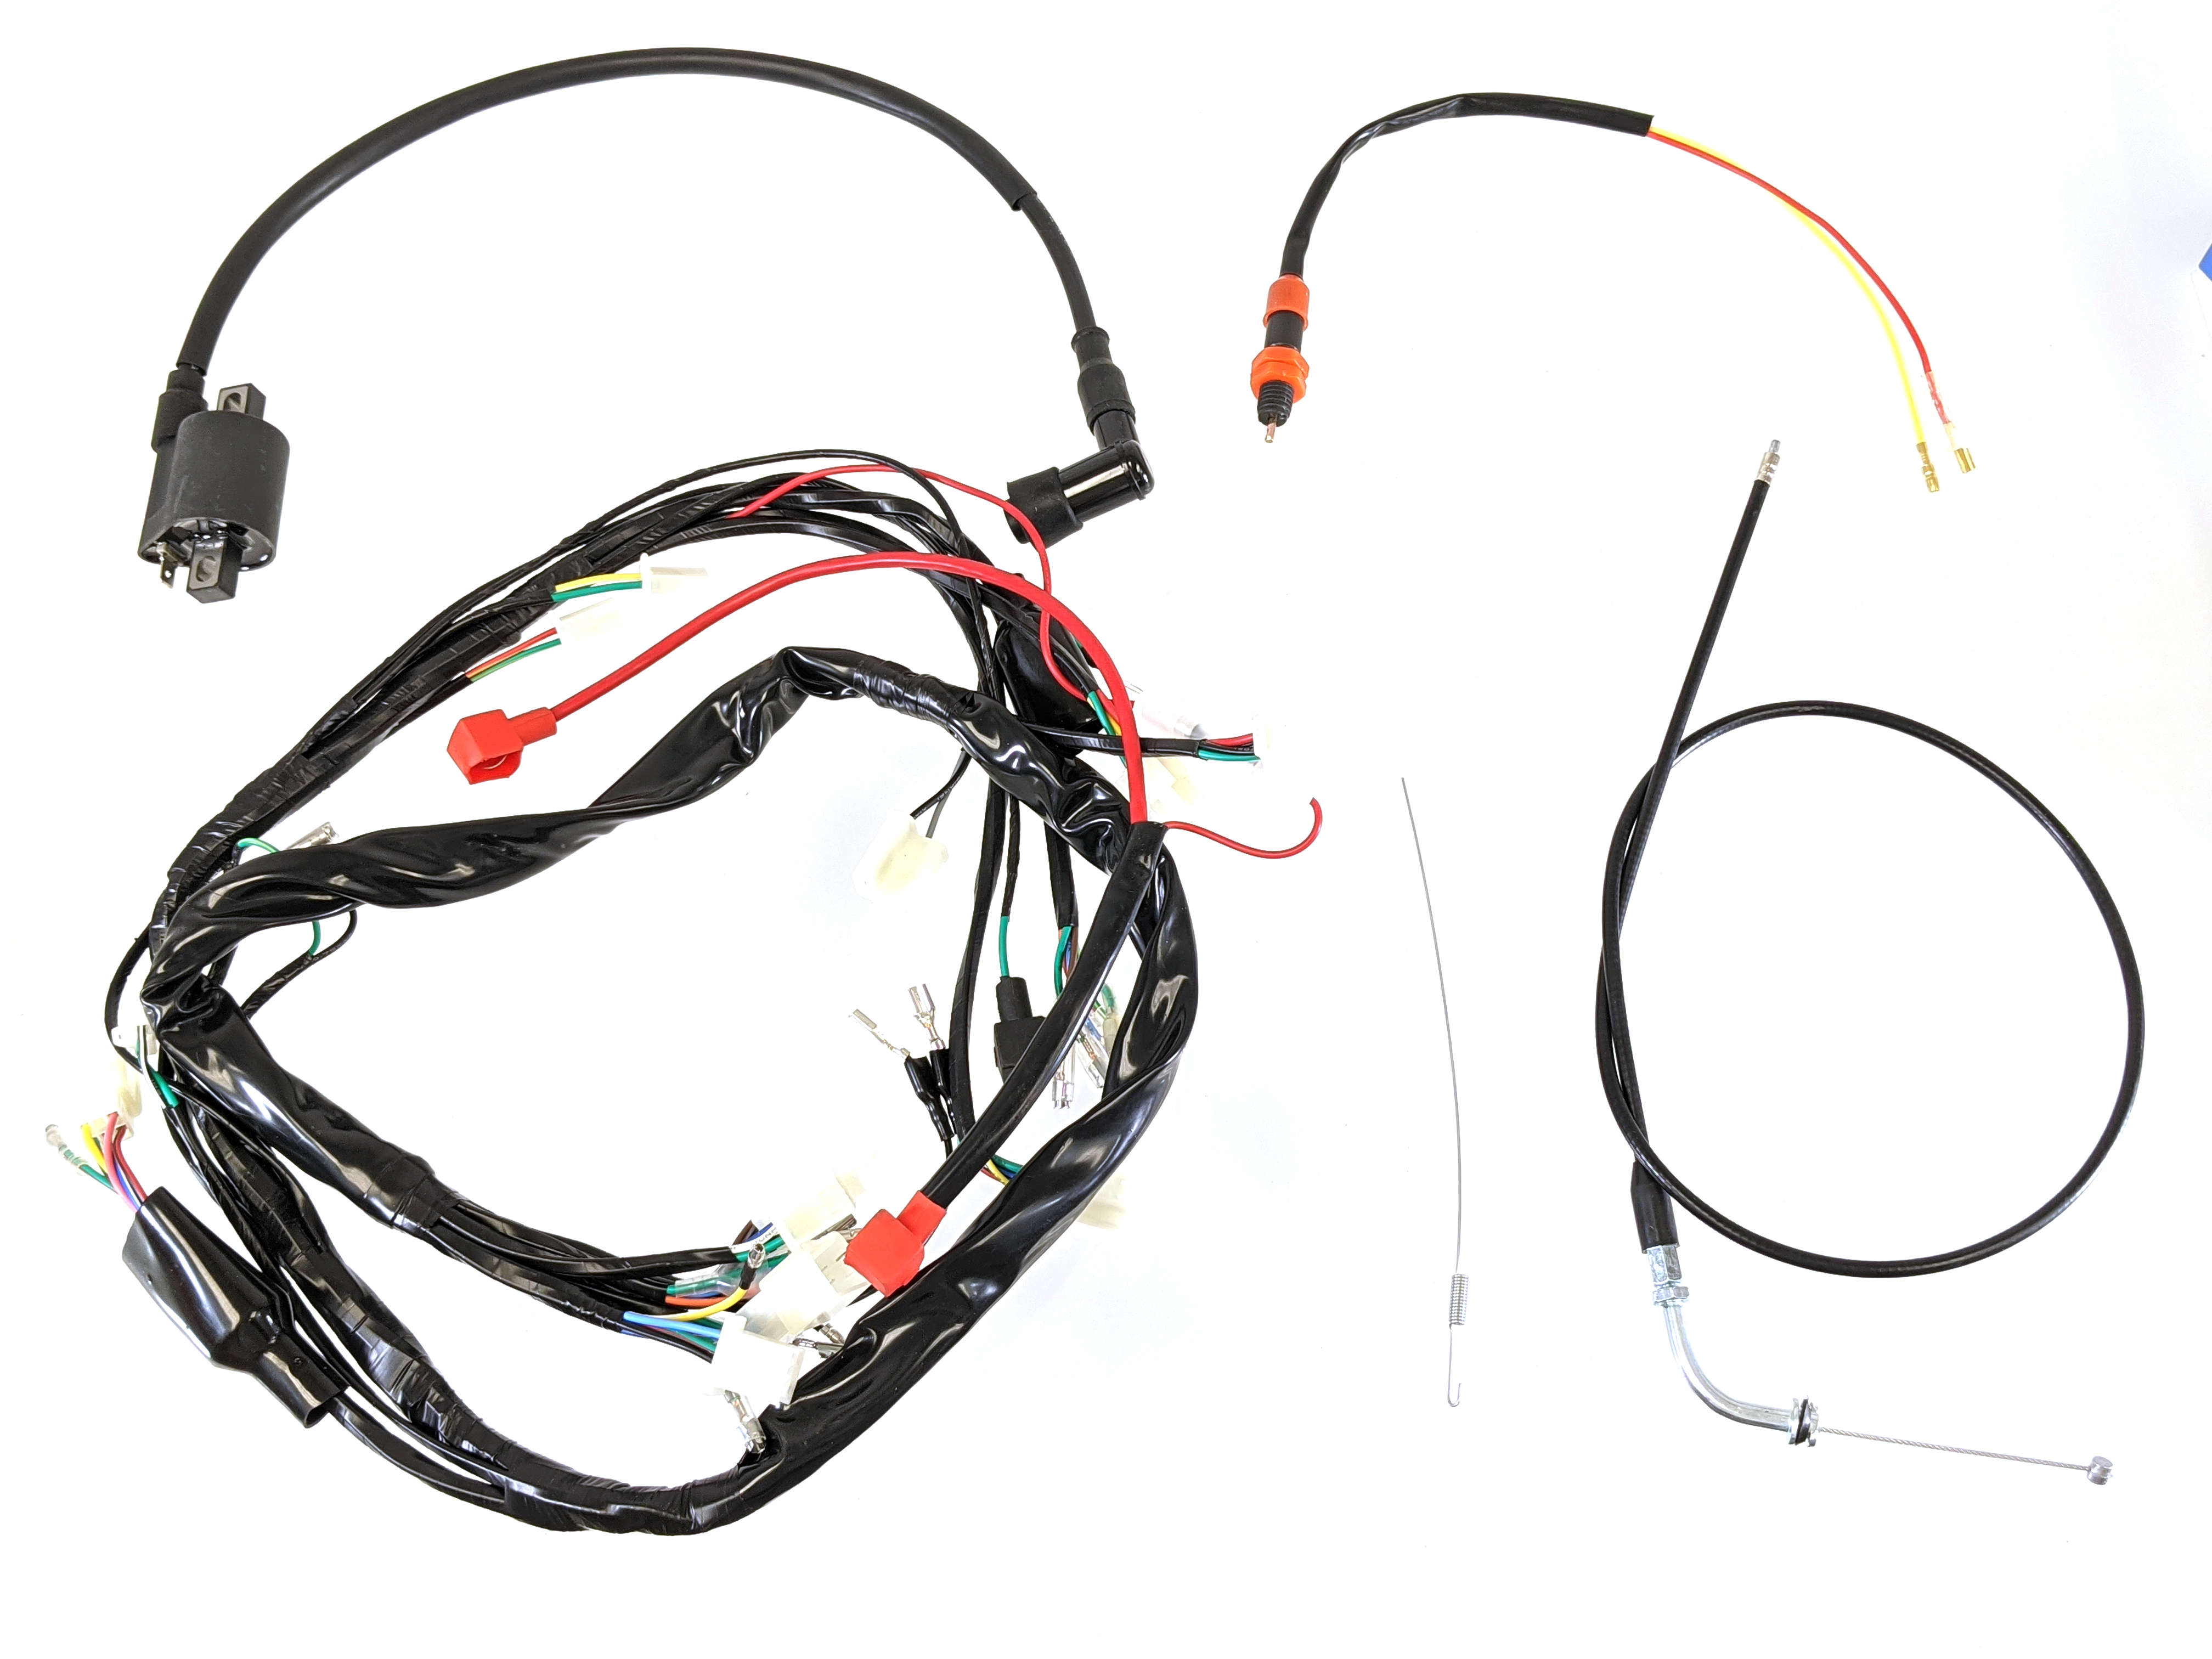 Ct70 Headlight And Wiring Kit For Ct70 With Zs190 Or Yx140